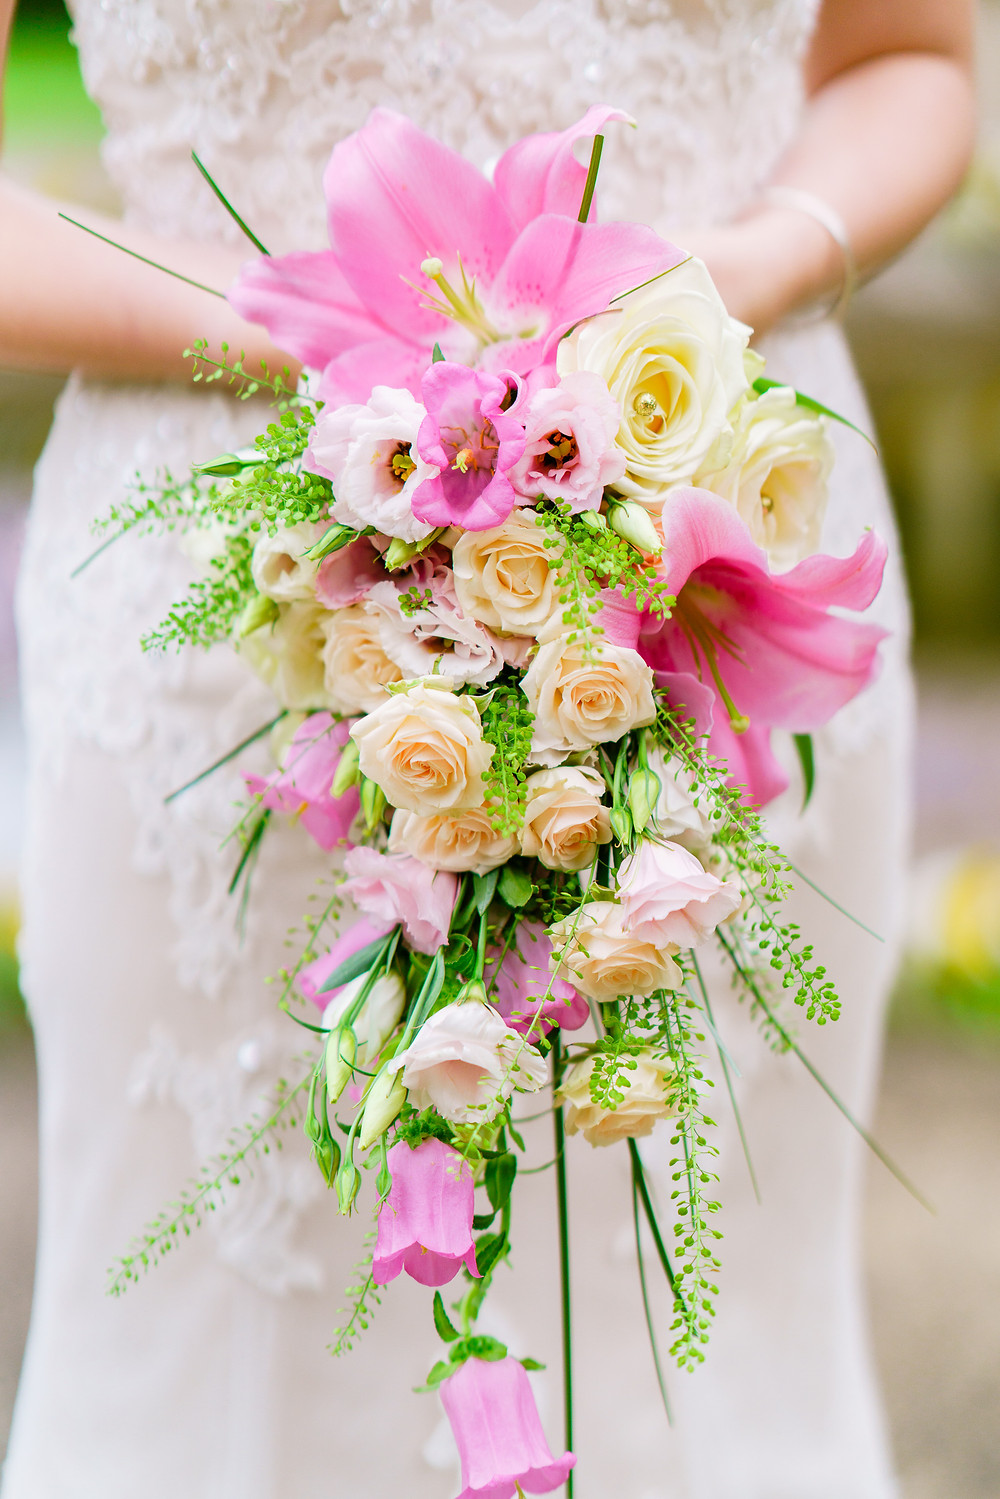 Gorgeous rose and lily shower bouquet